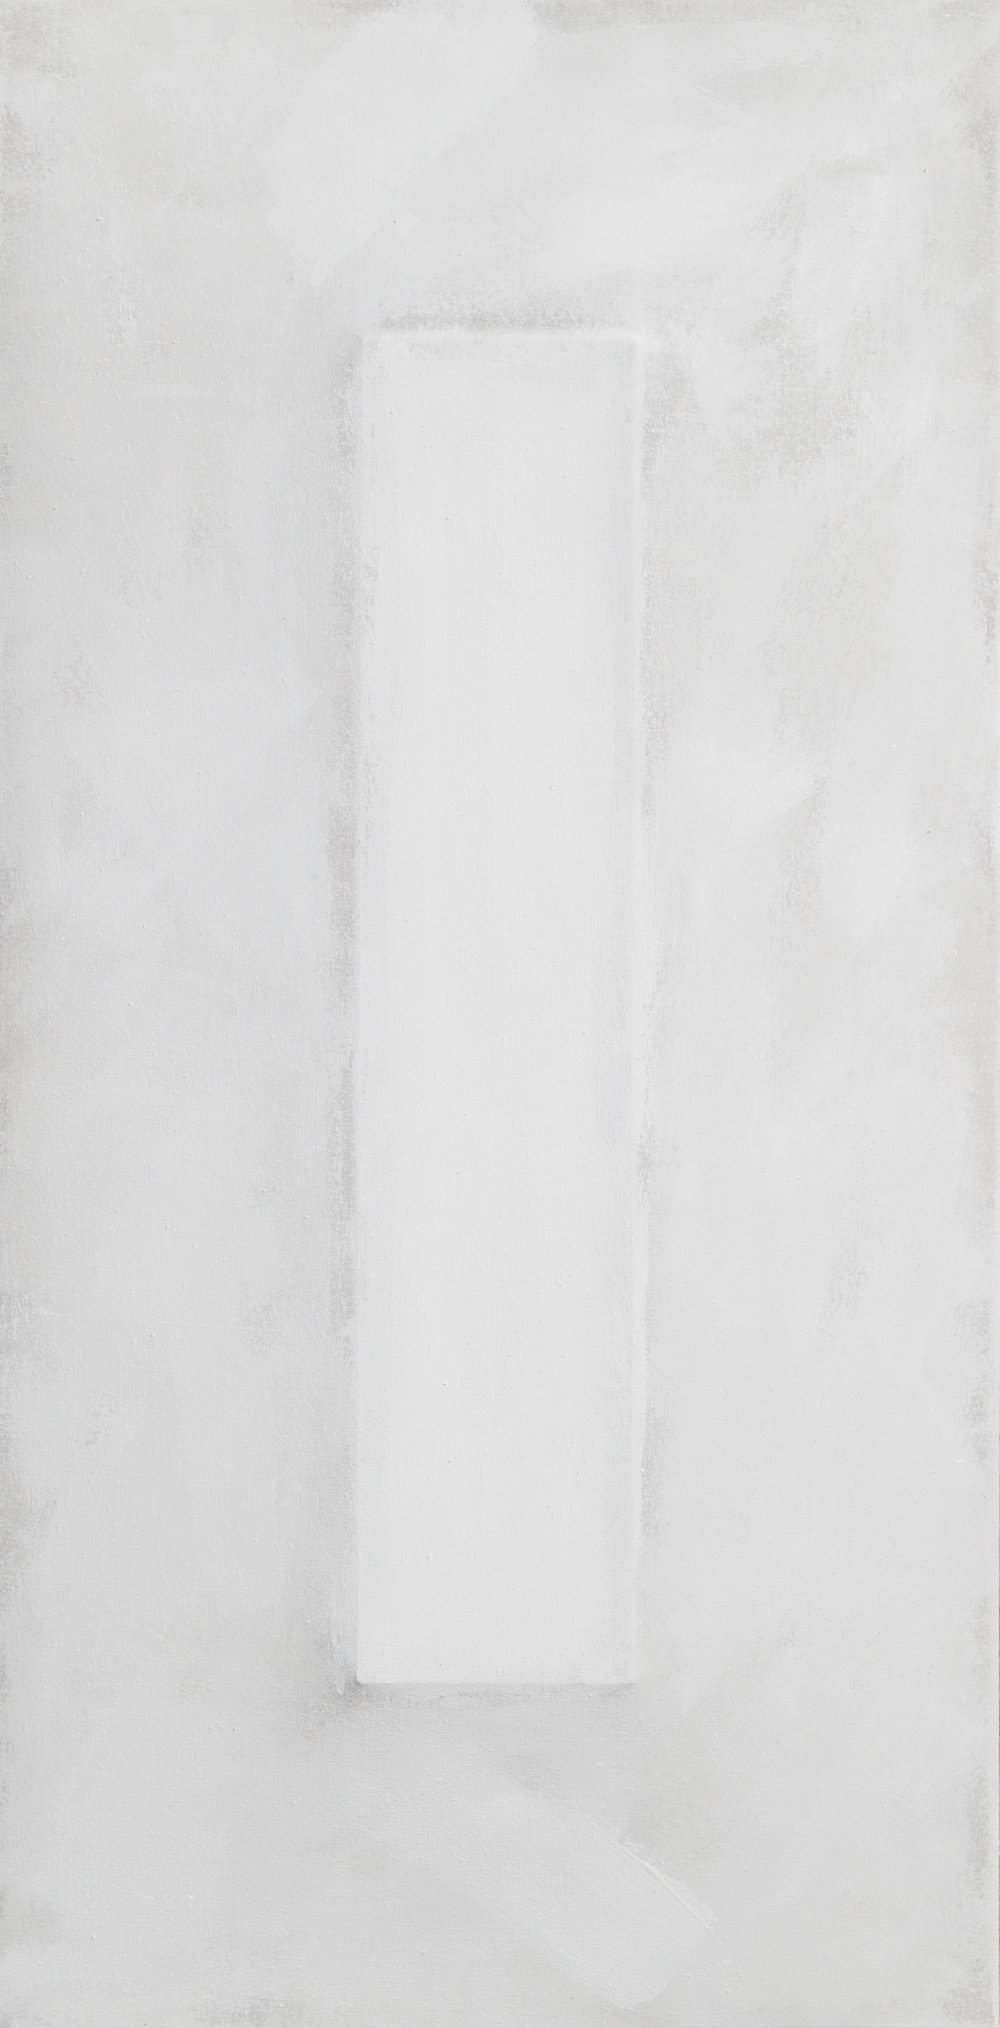 There's a Block in the Void (1726) , 2017, gesso on shaped canvas, 48 x 24 x 3 in.